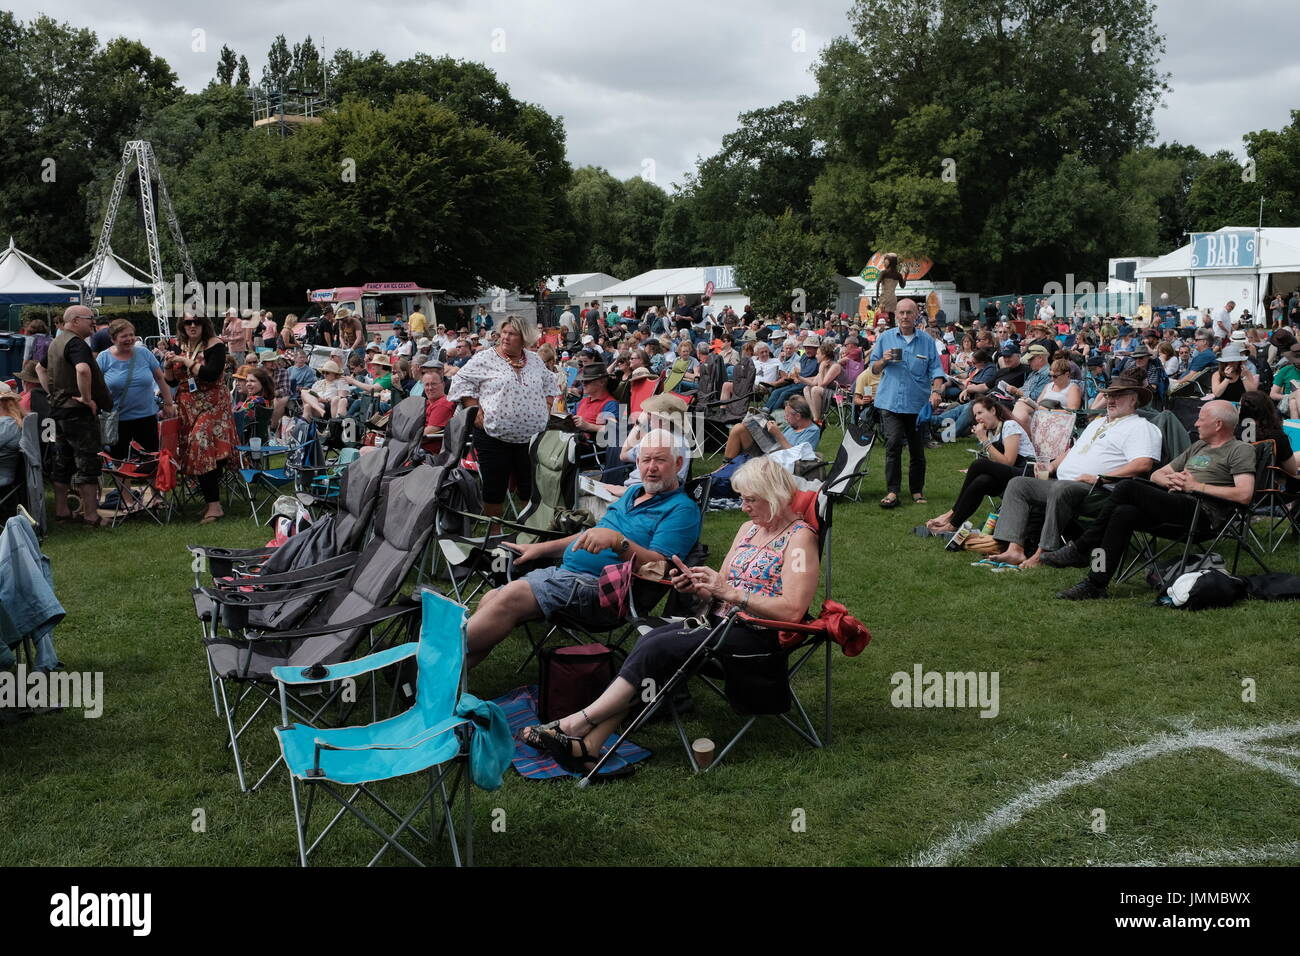 Cambridge, UK. 28th July, 2017. Day two of the Cambridge Folk Festival 2017 as crowds take to the deckchairs. Richard Etteridge / Alamy Live News - Stock Image